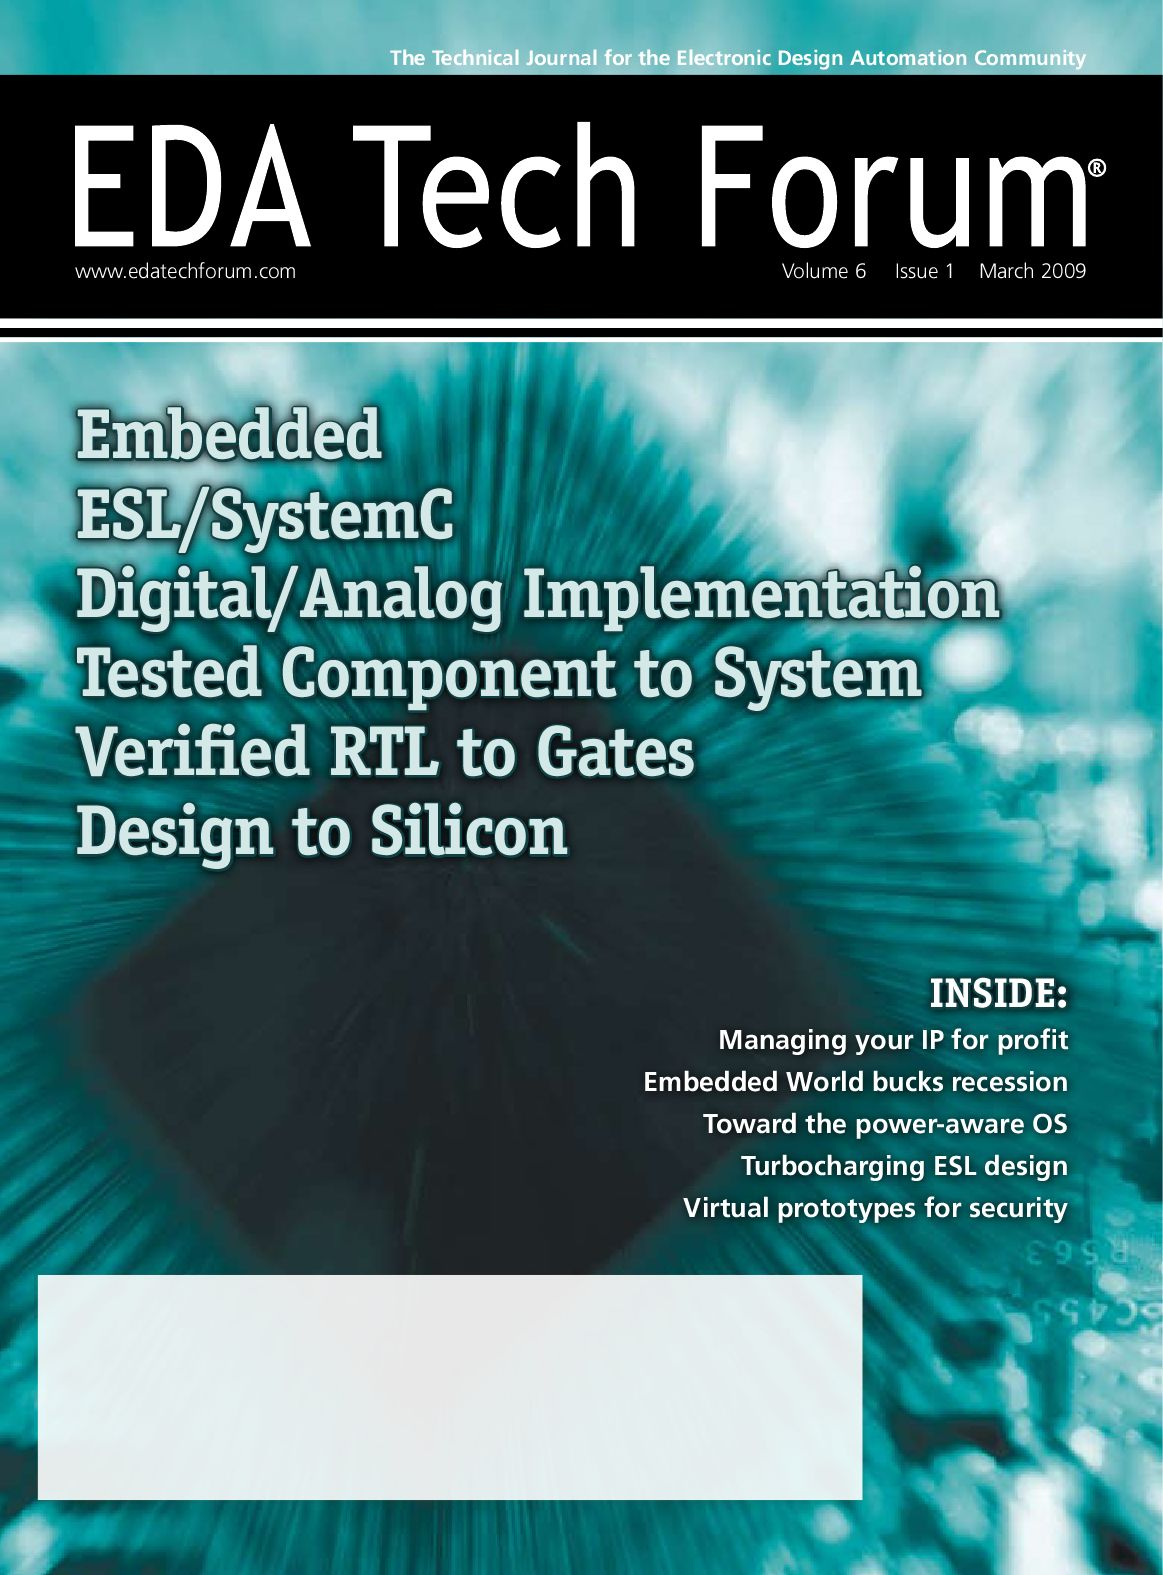 Eda Tech Forum Journal March 2009 By Rtc Media Issuu